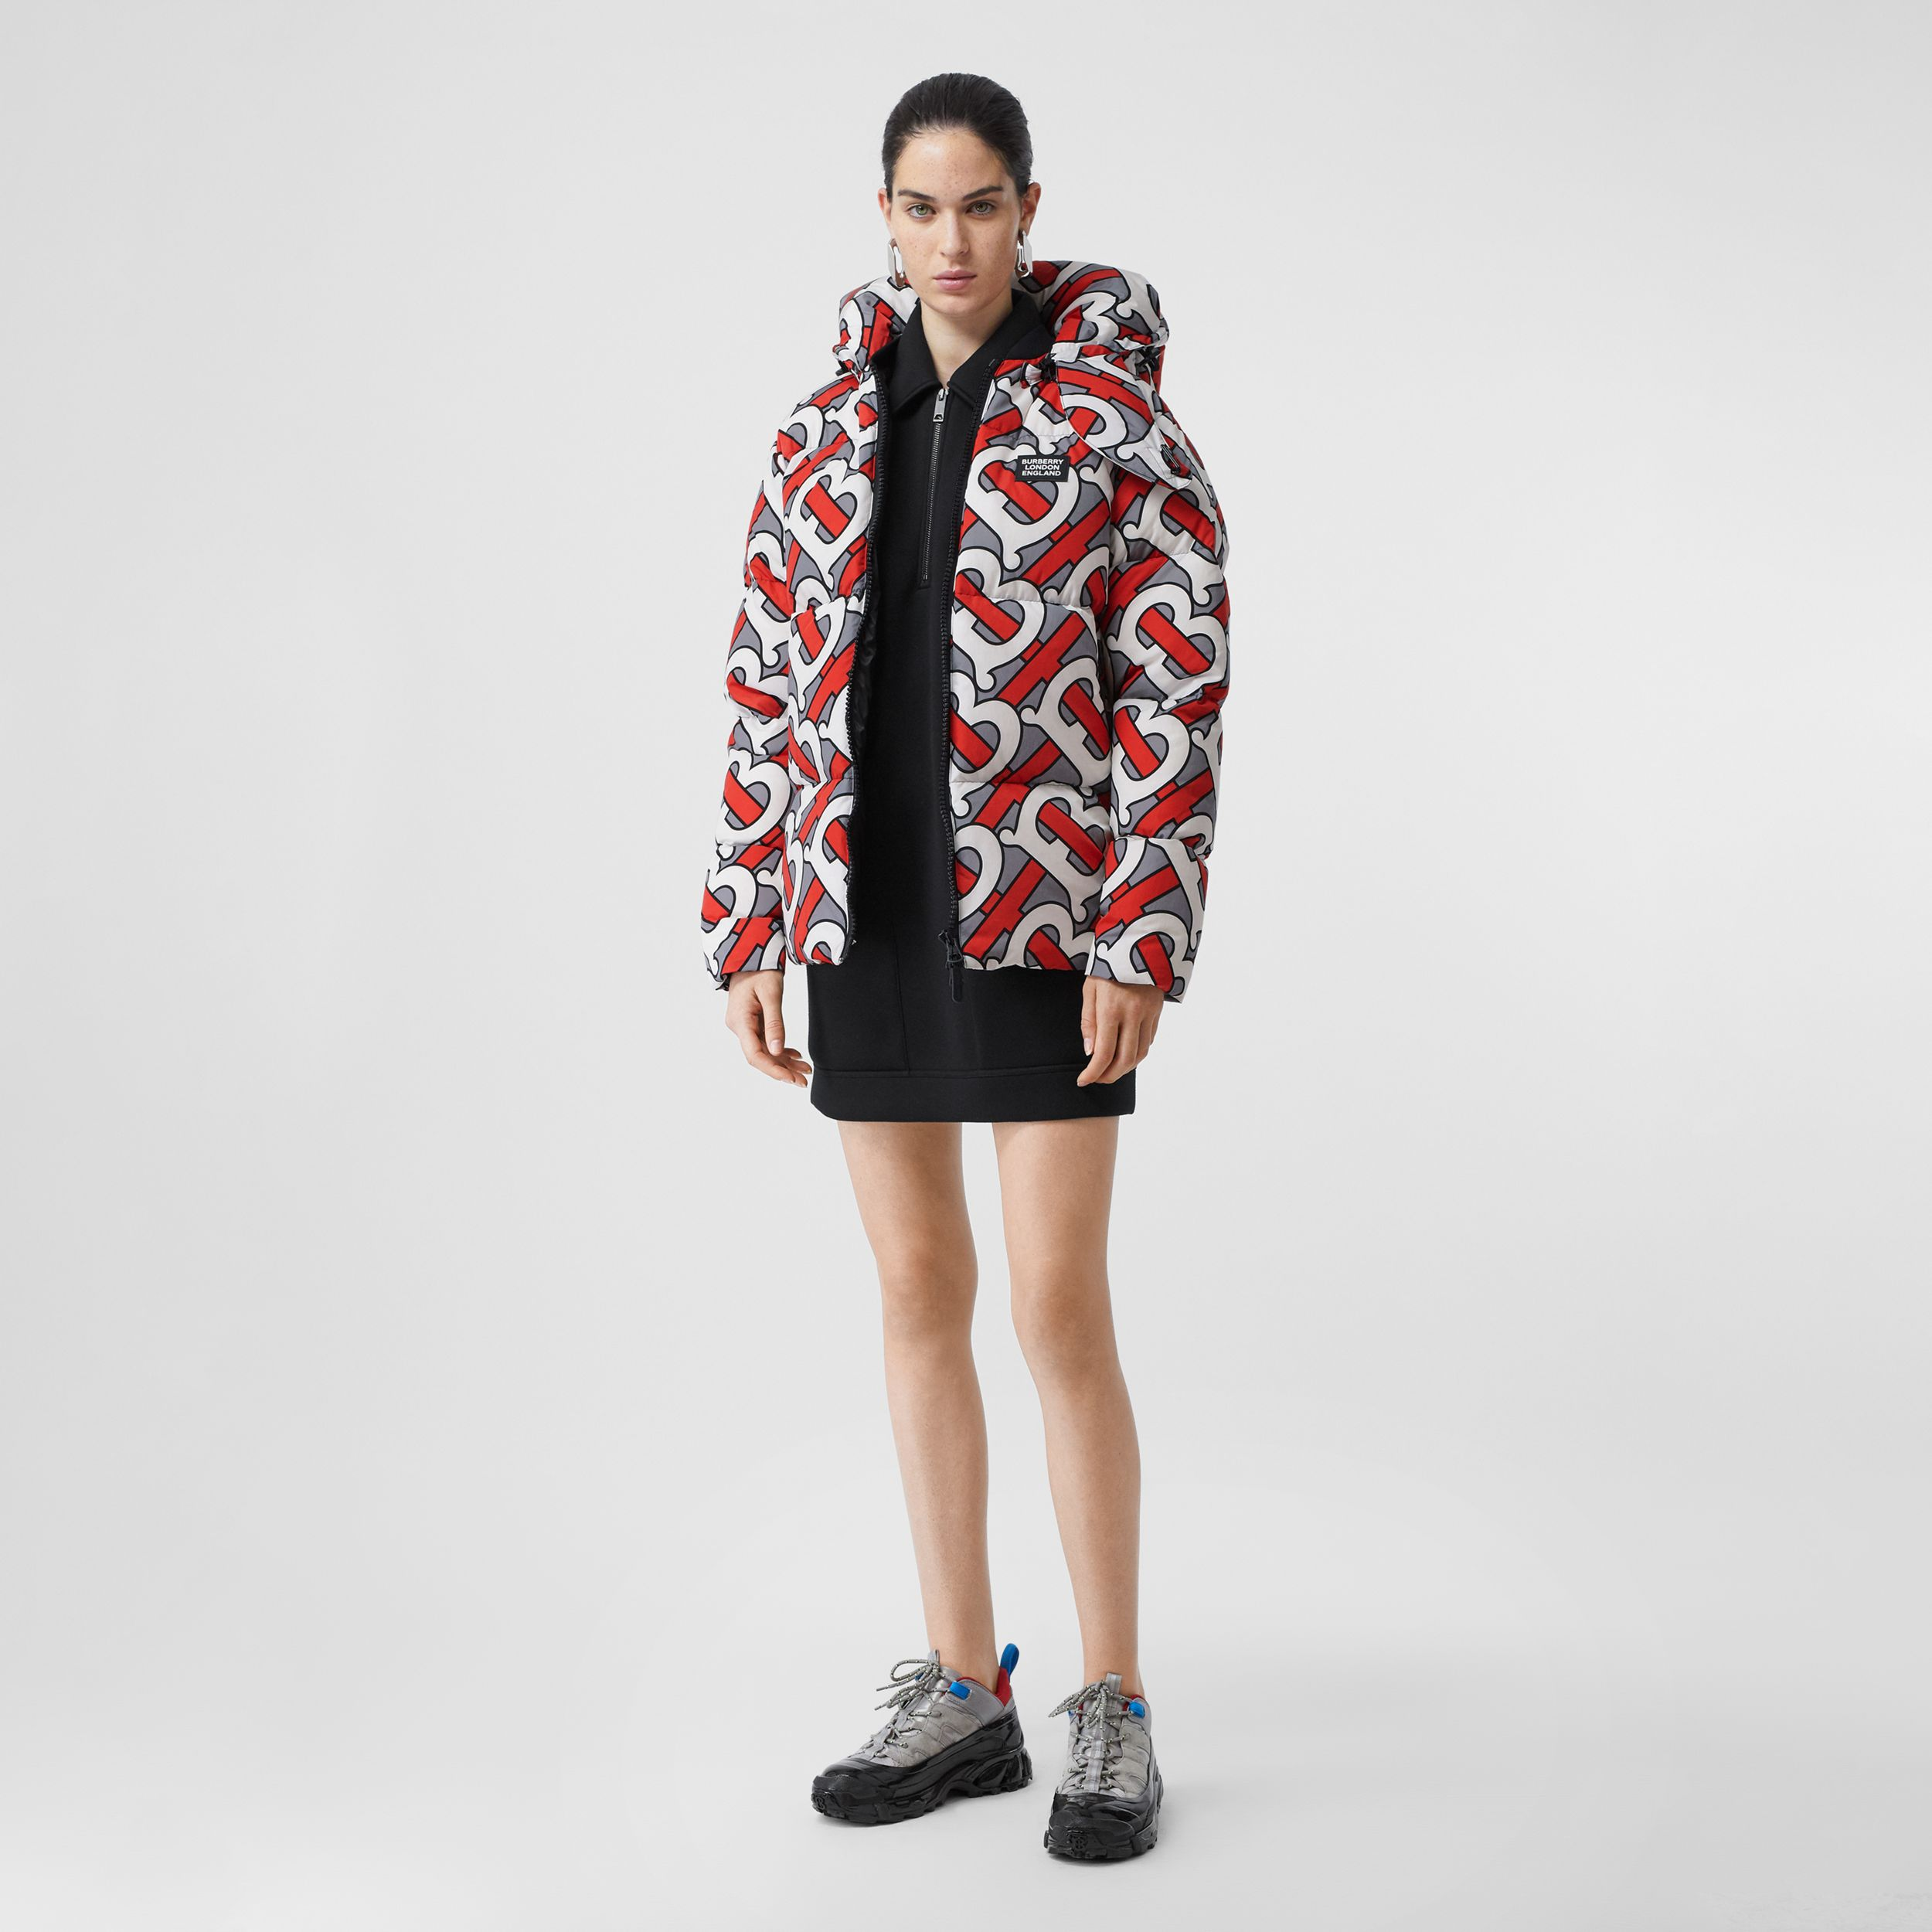 Monogram Print Puffer Jacket in Steel Grey | Burberry - 3